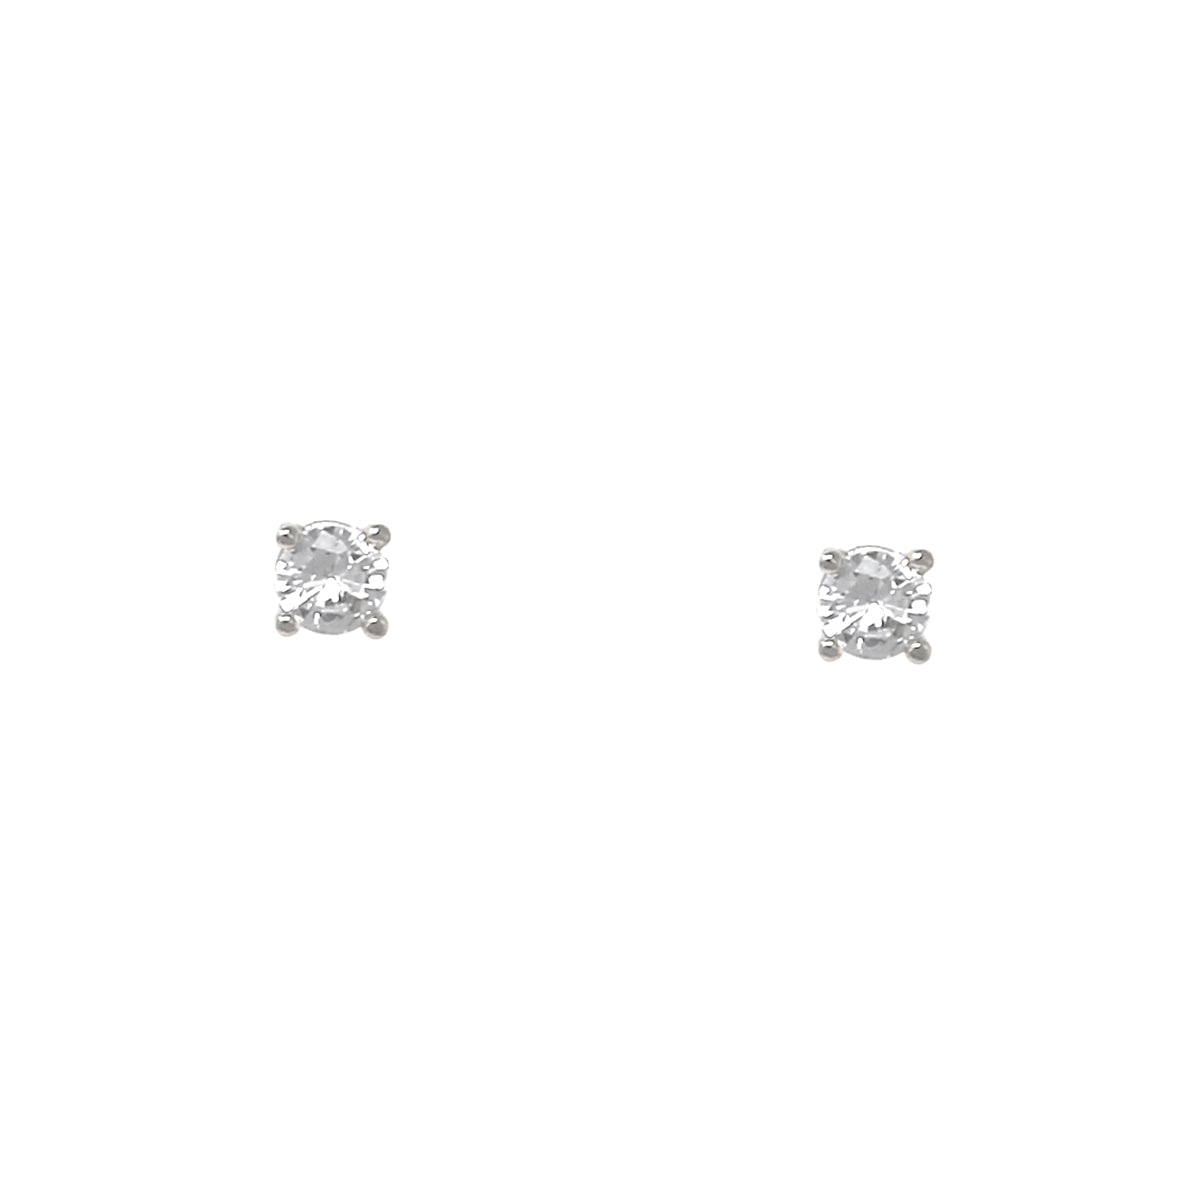 Round Cubic Zirconia Stud Earrings (5 mm)